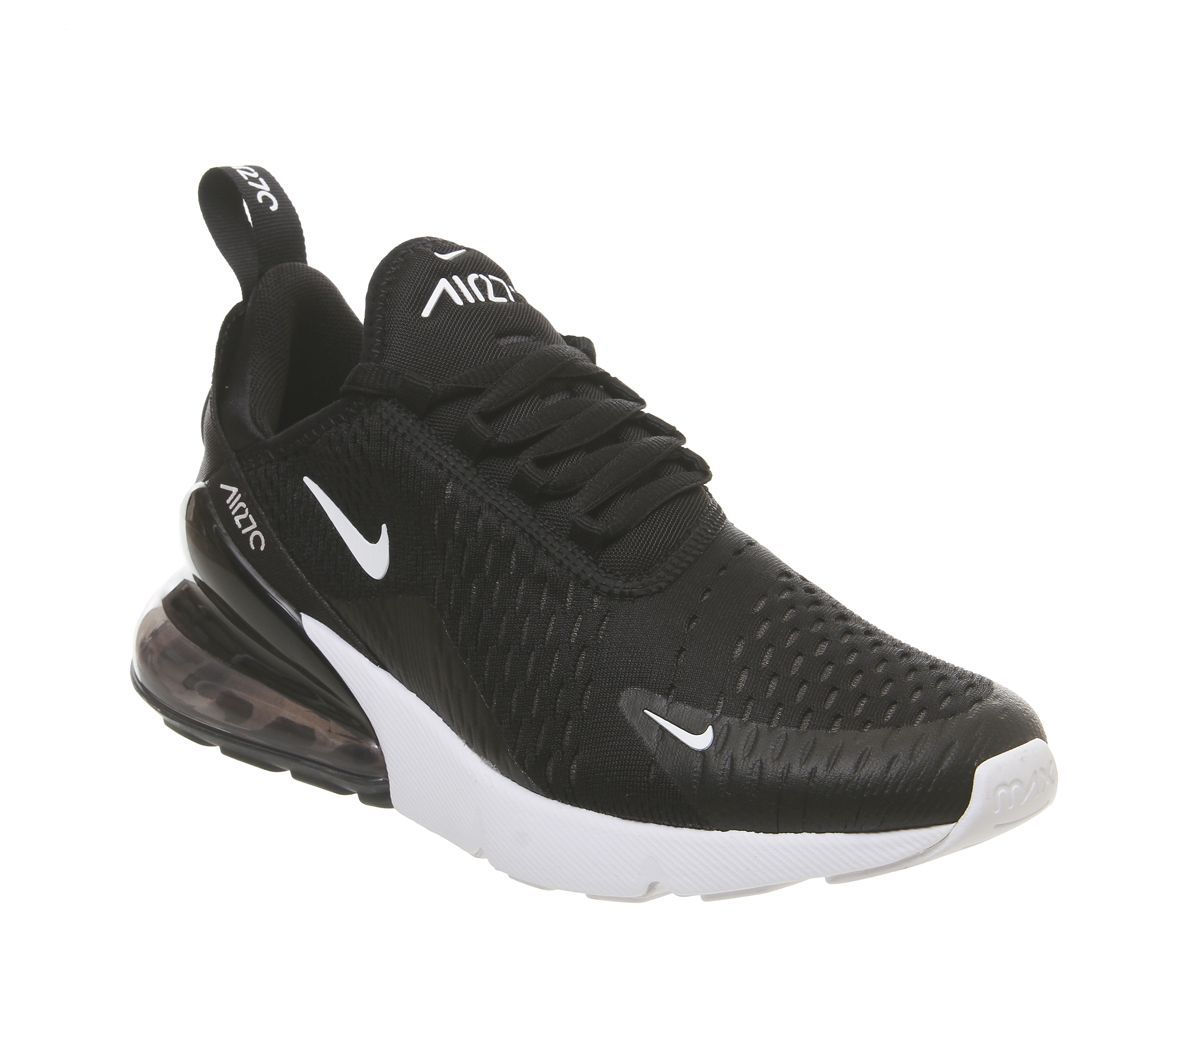 4c5654f26b6 Nike Air Max 270 Trainers Black Anthracite White F - Hers trainers